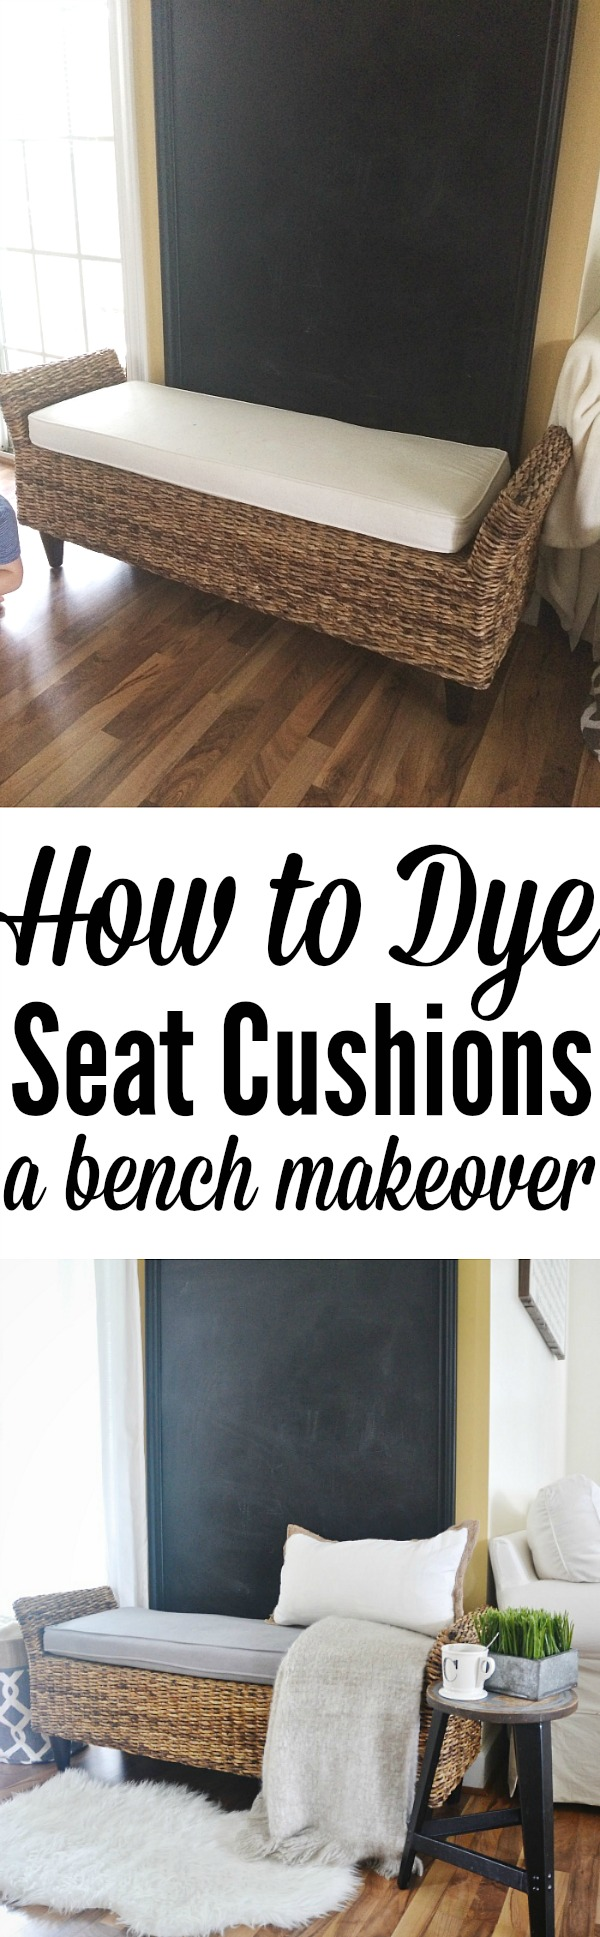 How to dye seat cushions - The easy way & for less than $10